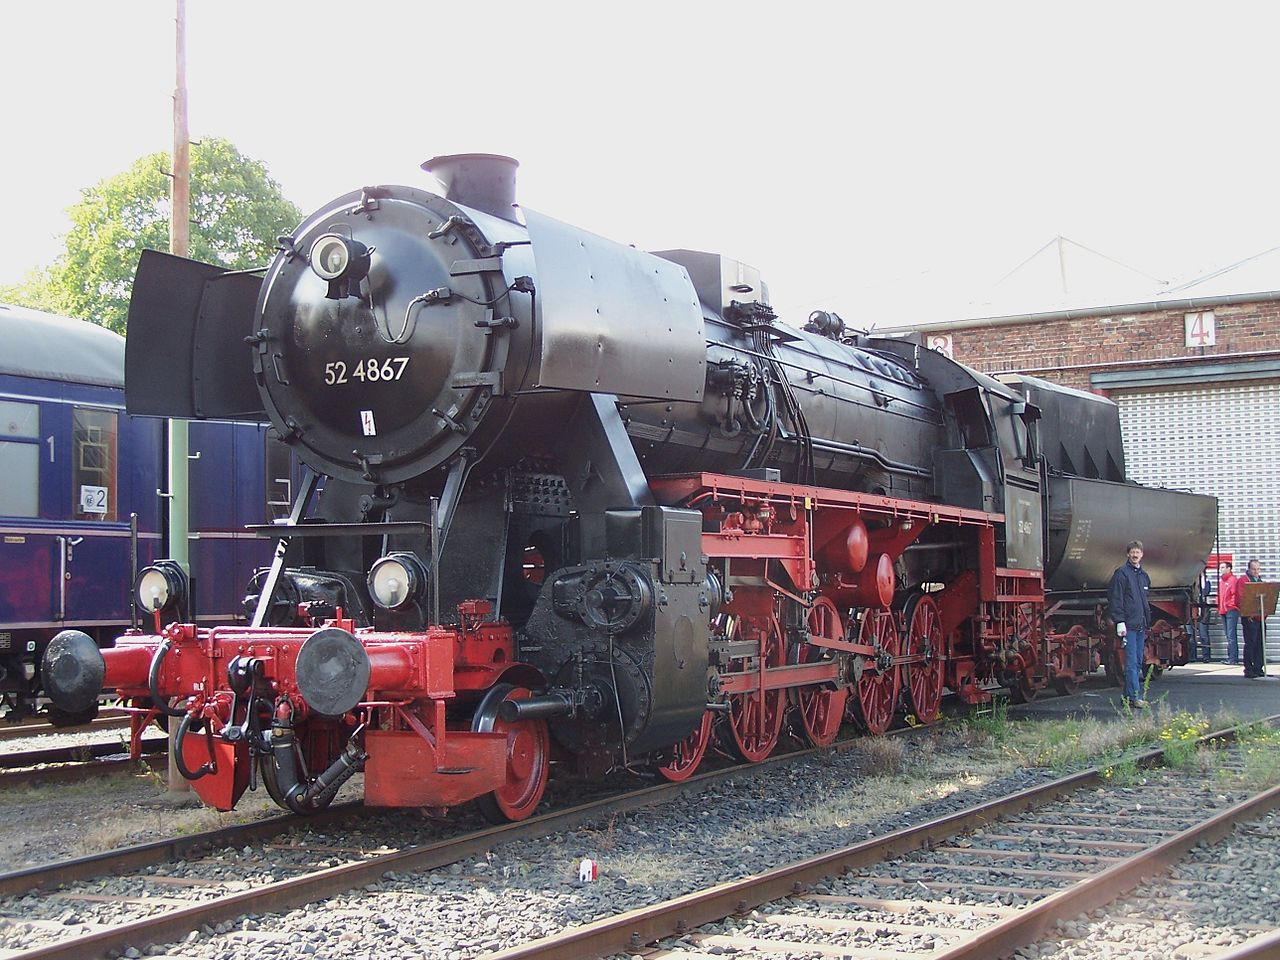 Rail - Locomotive - Steam - 2-10-0 DRB 52